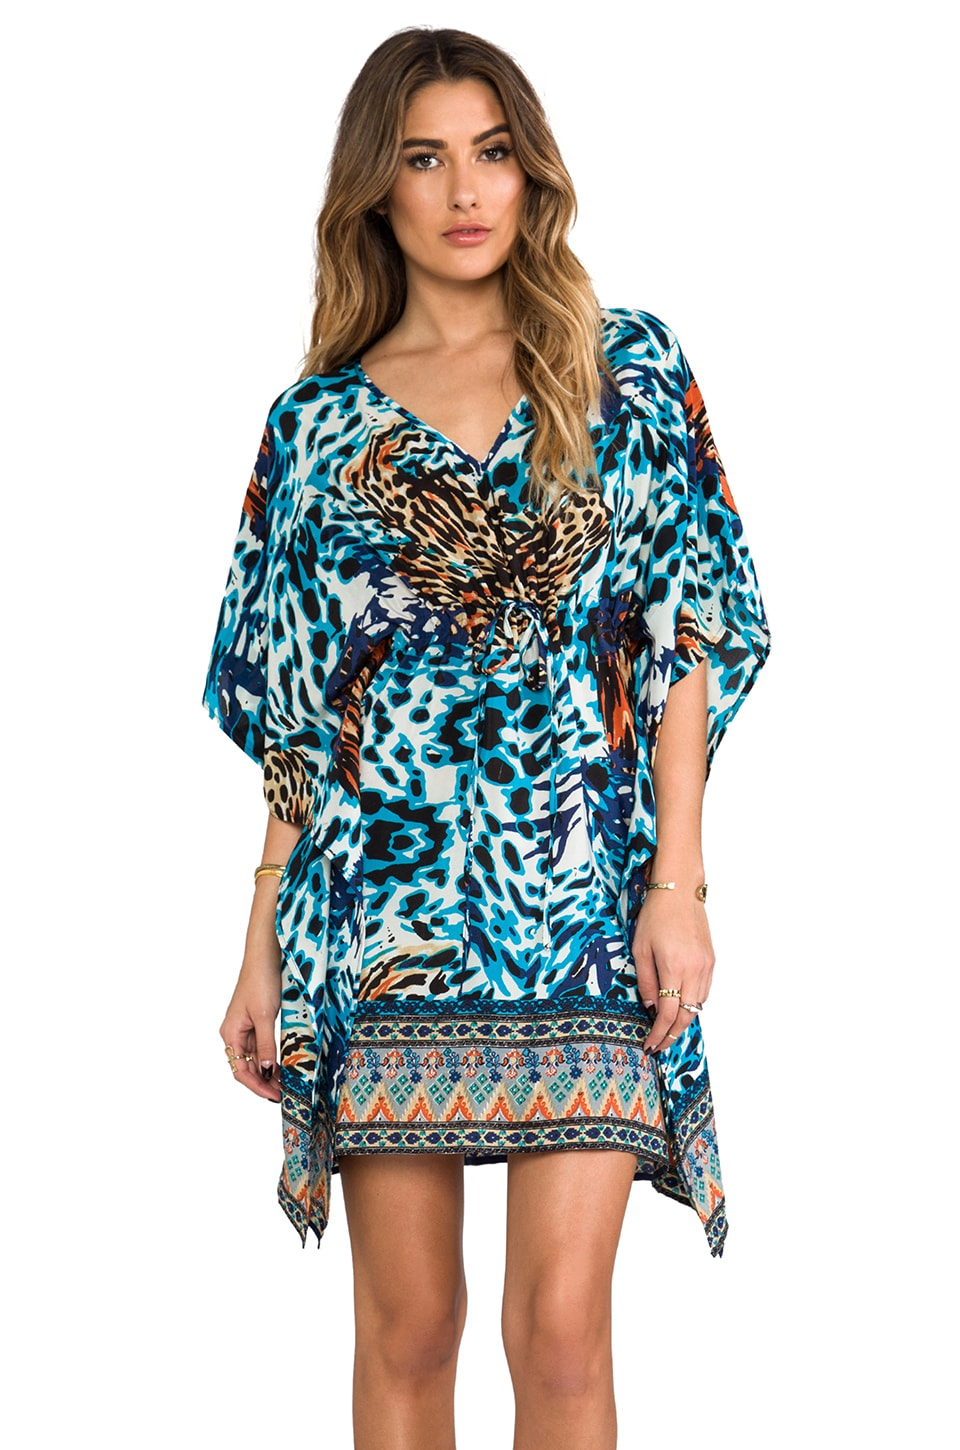 Tolani Kanika Kaftan in Blue Animal